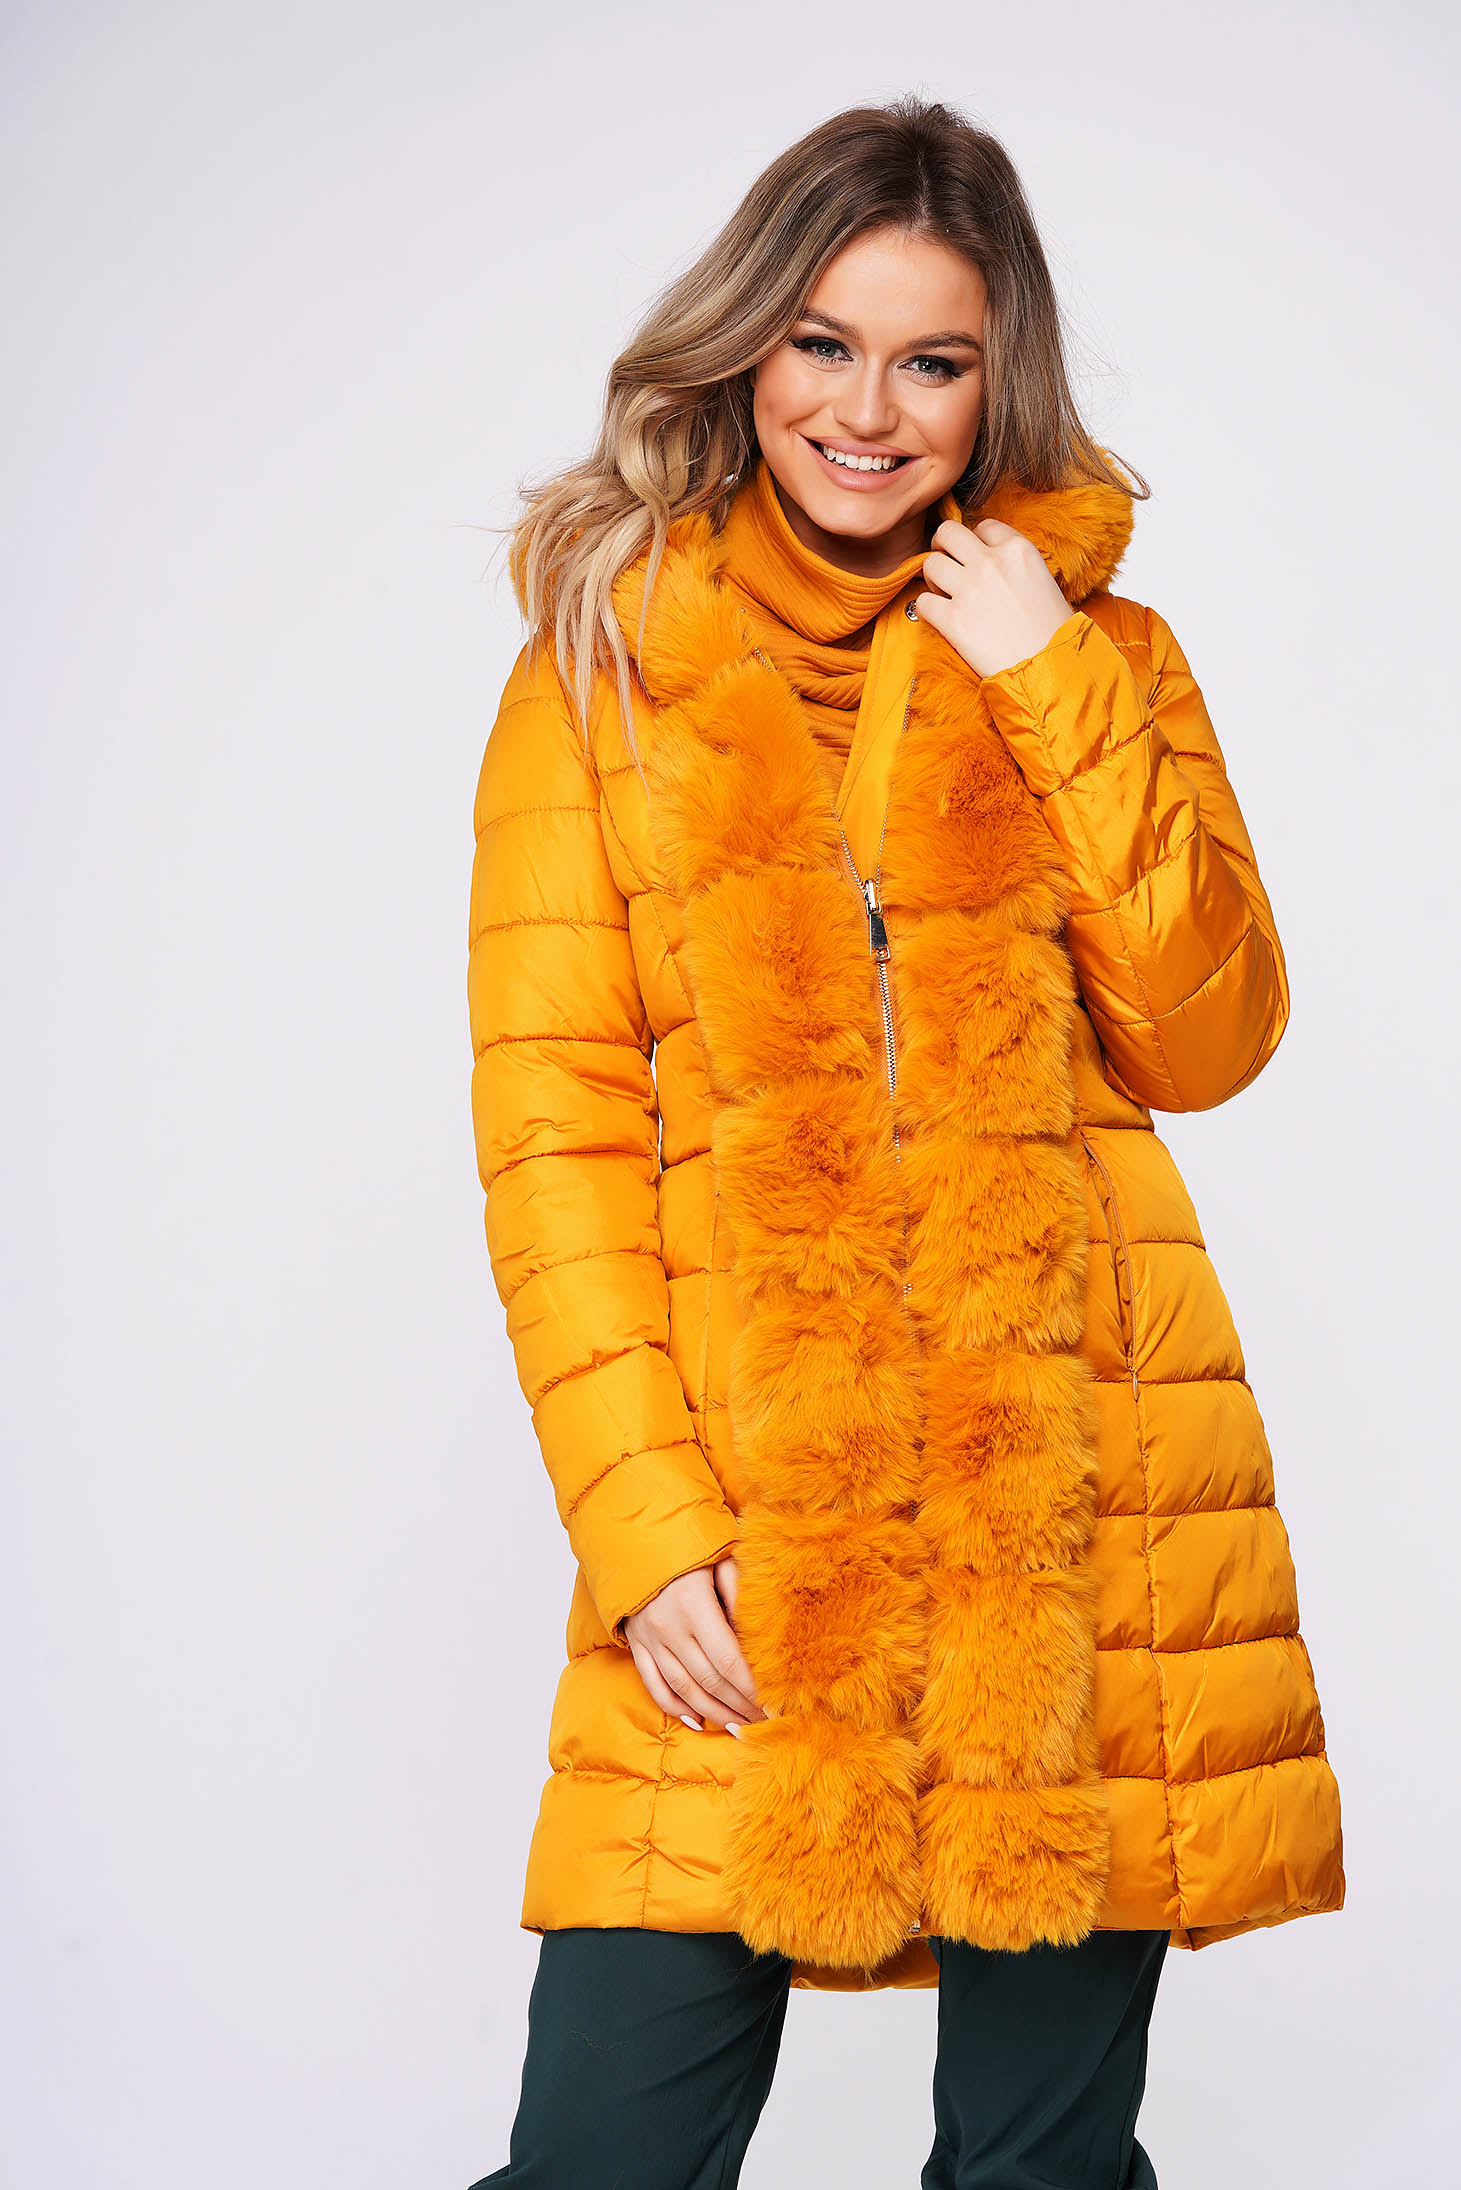 Yellow jacket casual from slicker double-faced arched cut with faux fur accessory